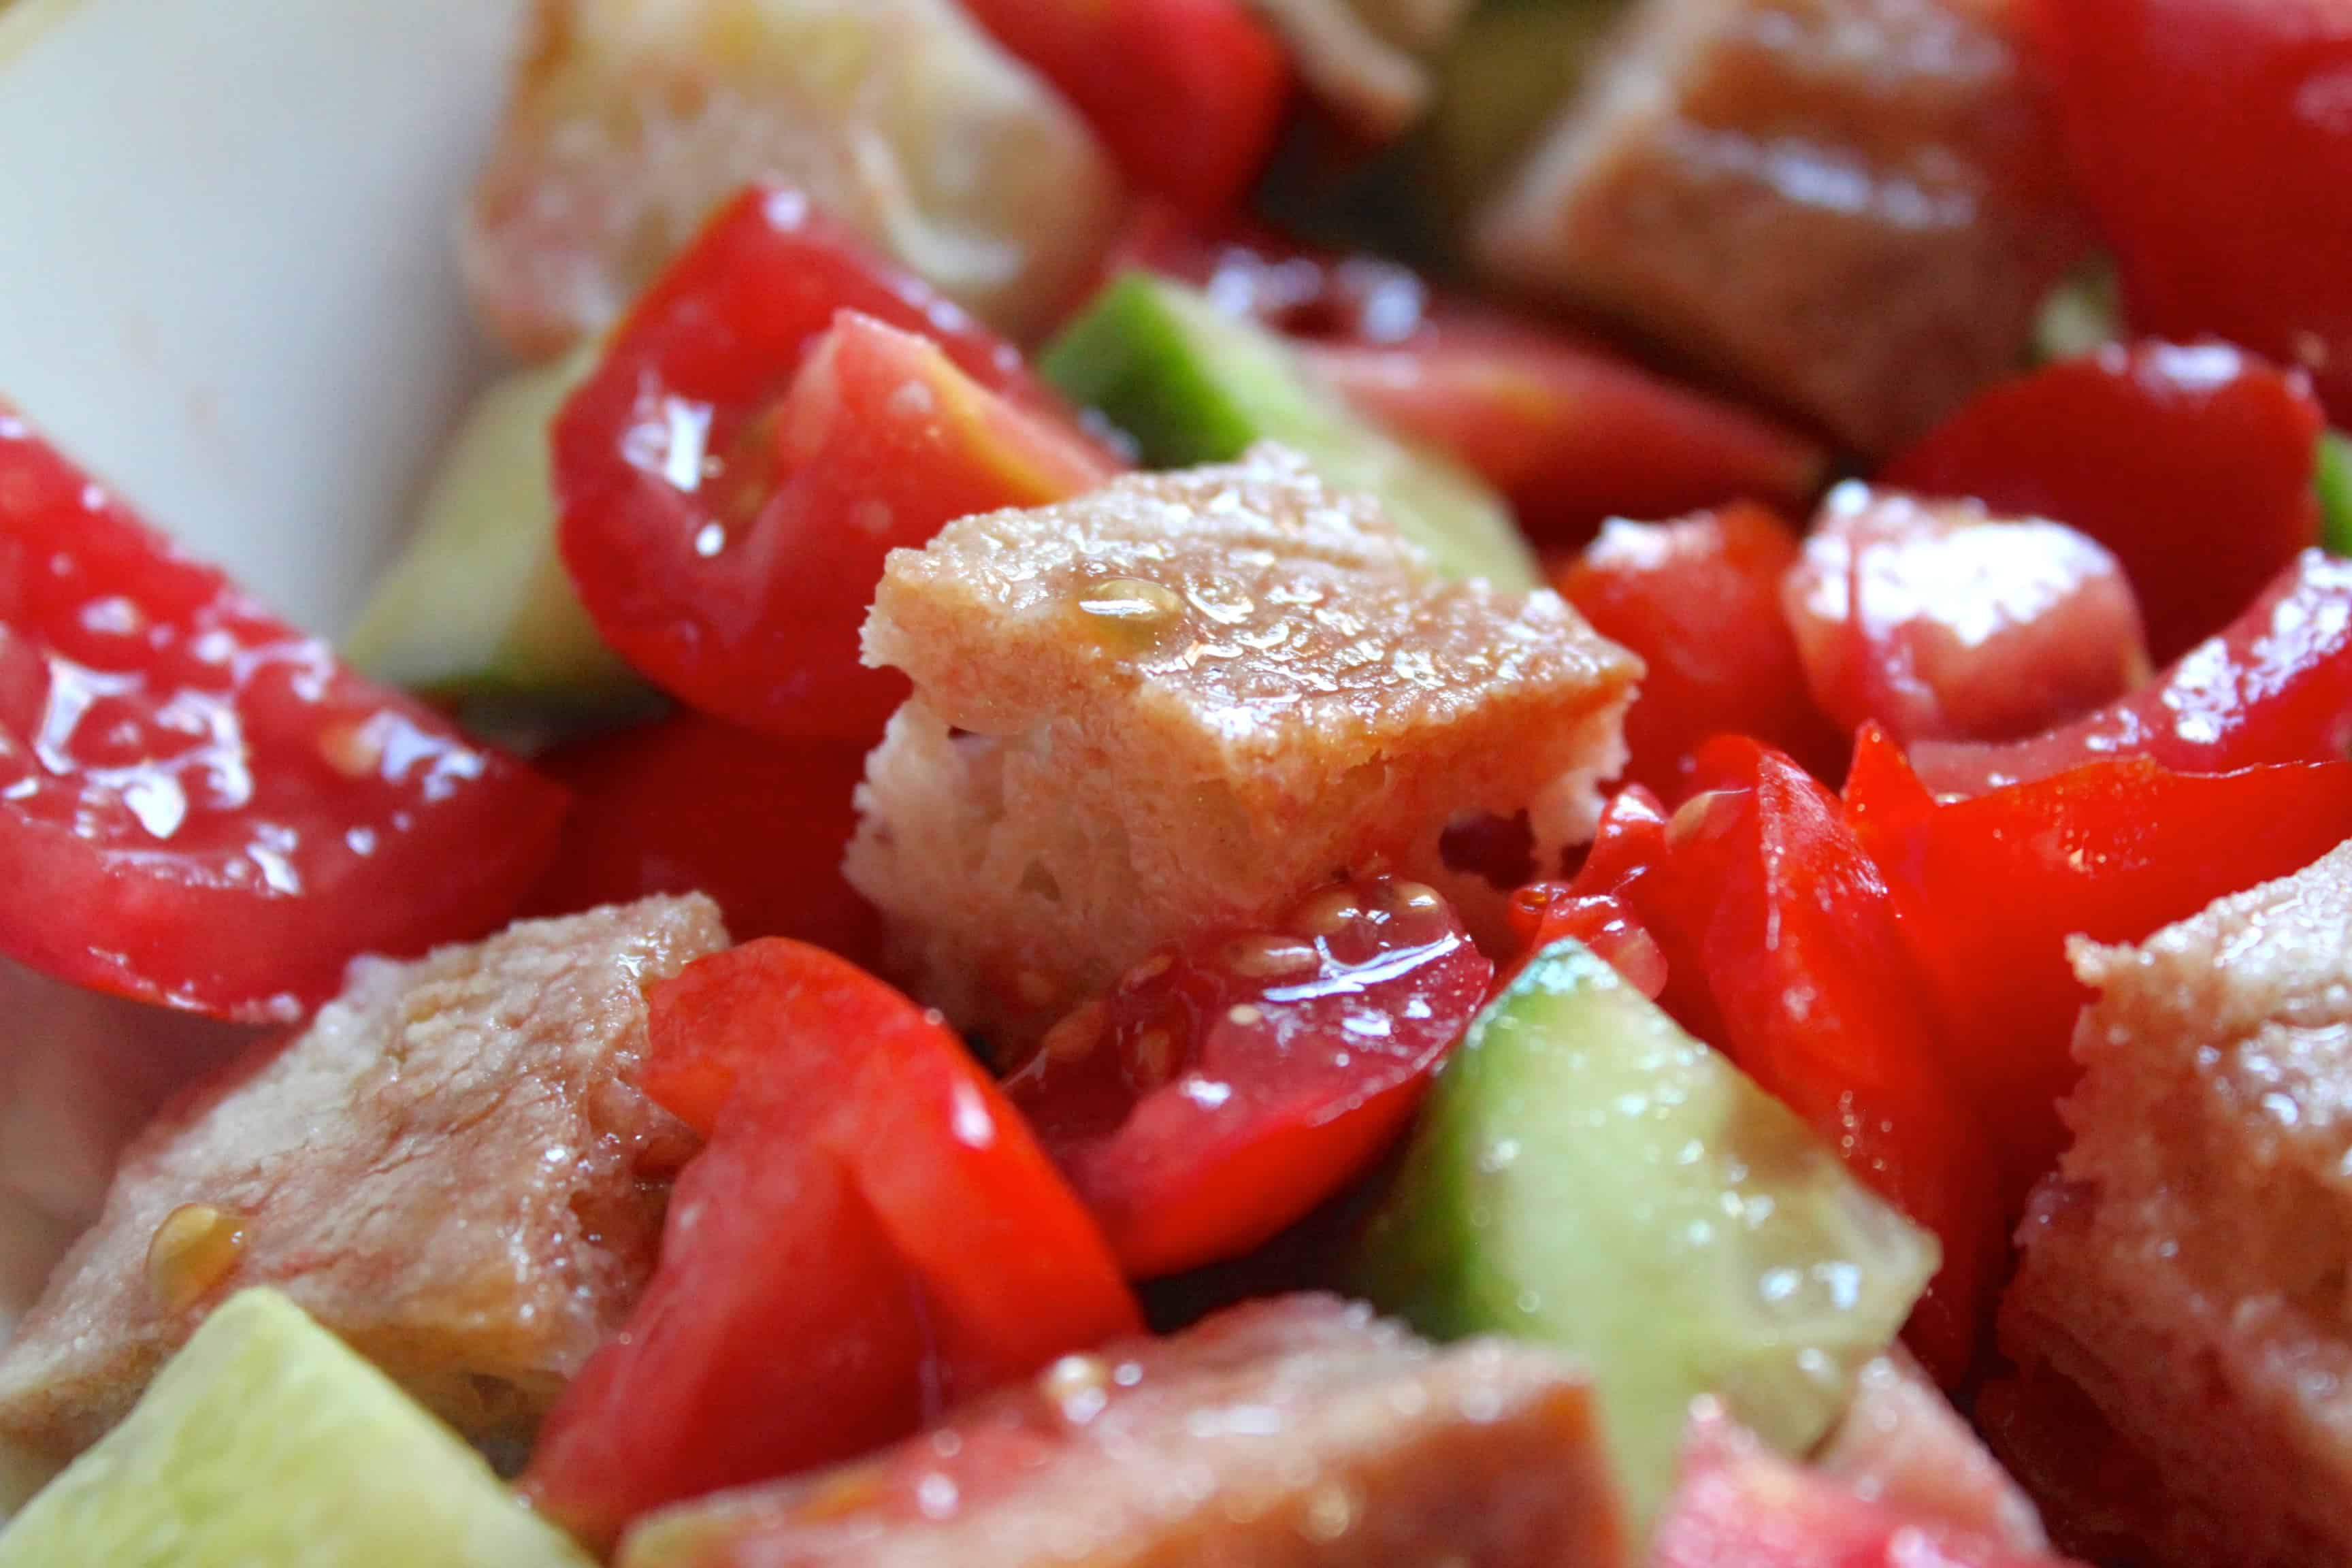 Cucina Povera Salad Panzanella Traditional Italian Bread And Tomato Salad